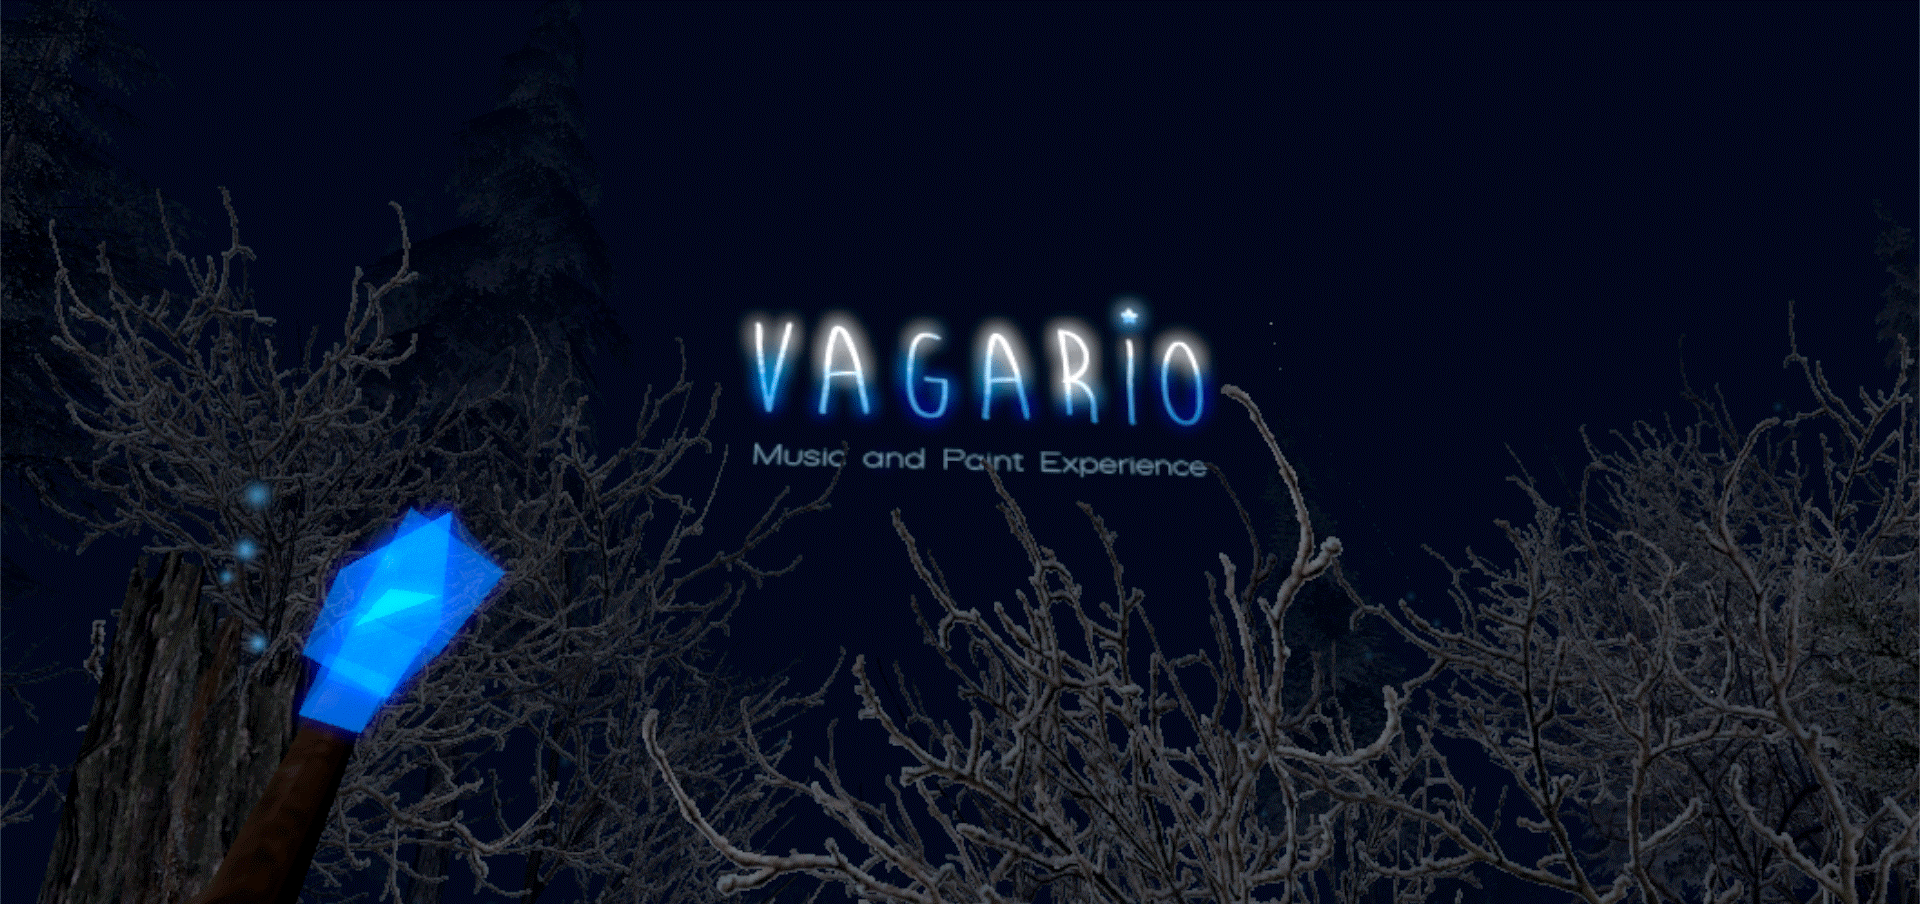 Vagario: Music and Paint Experience